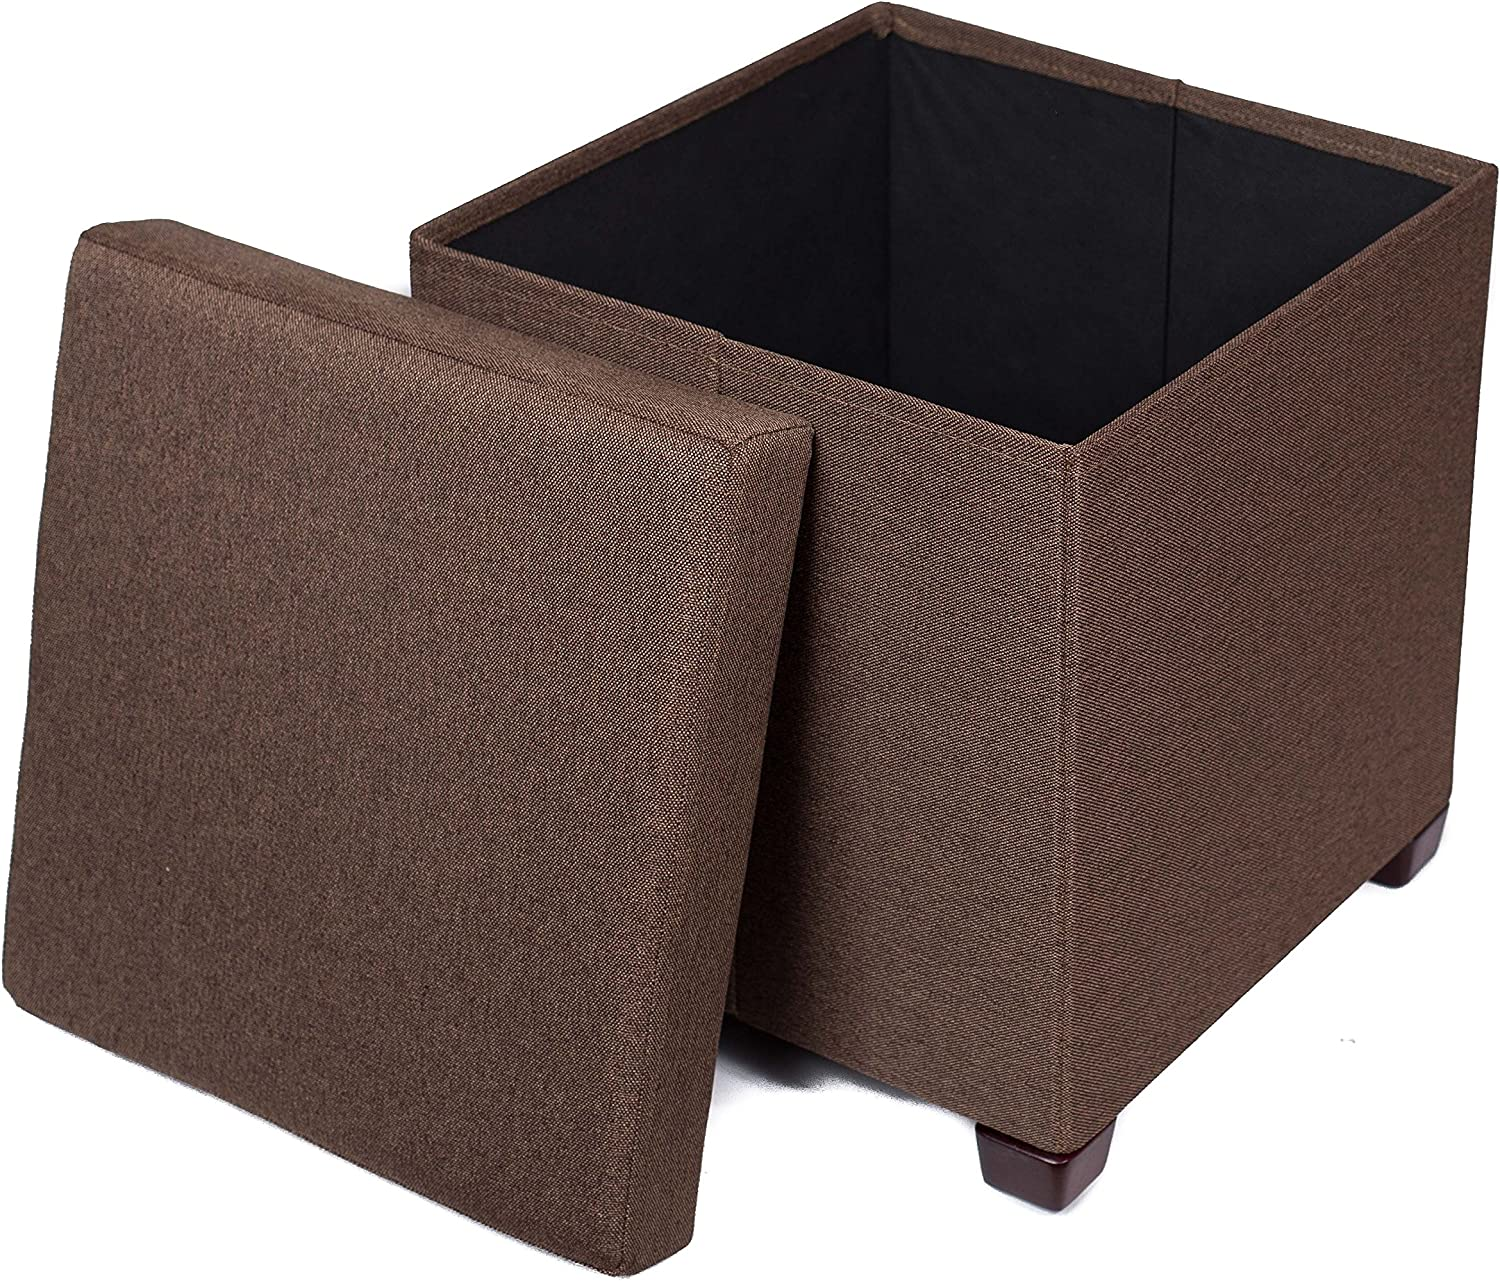 BIRDROCK HOME Folding Storage Ottoman with Legs - Upholstered - 16 x 16 - Linen - Strong and Sturdy - Quick and Easy Assembly - Foot Stool - Brown